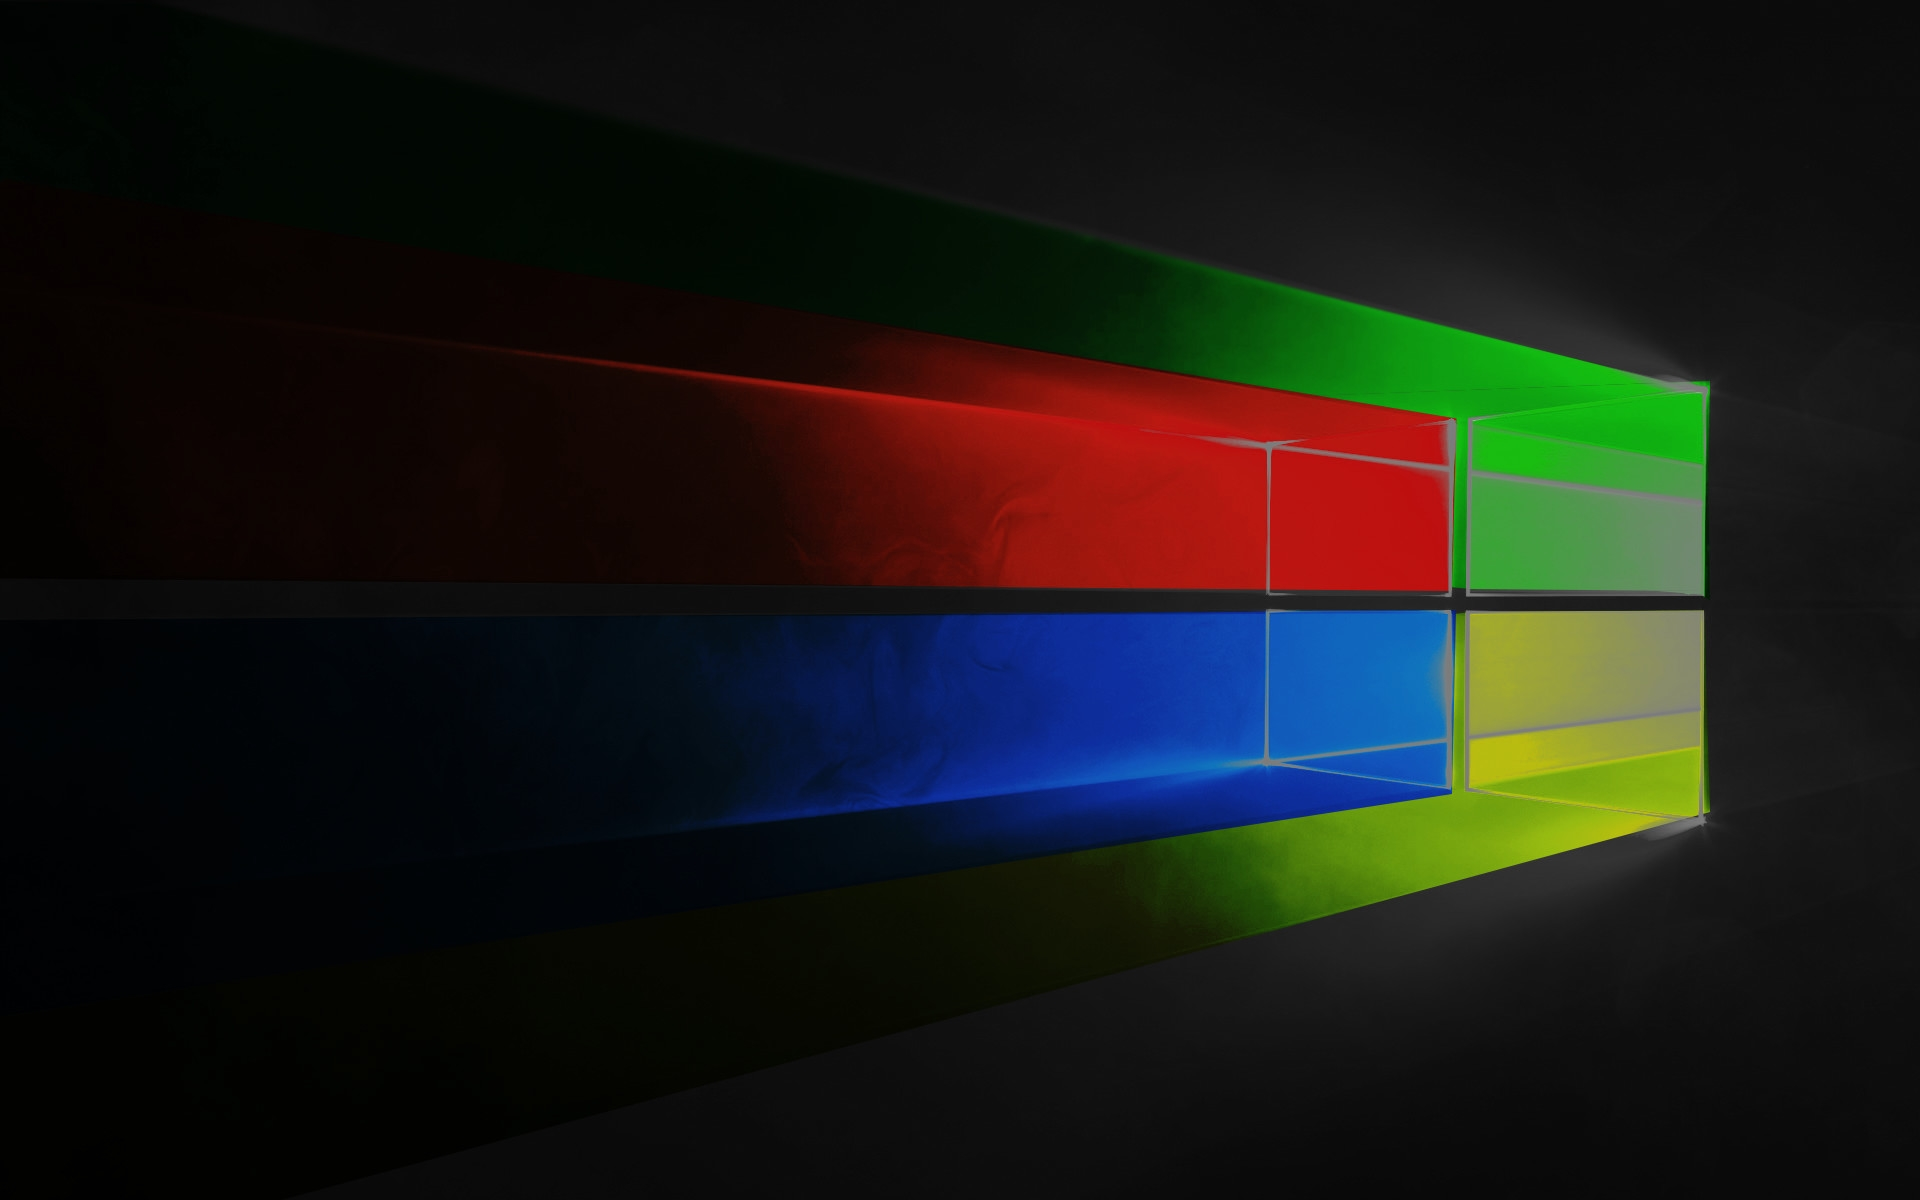 Windows 10 logo em cores